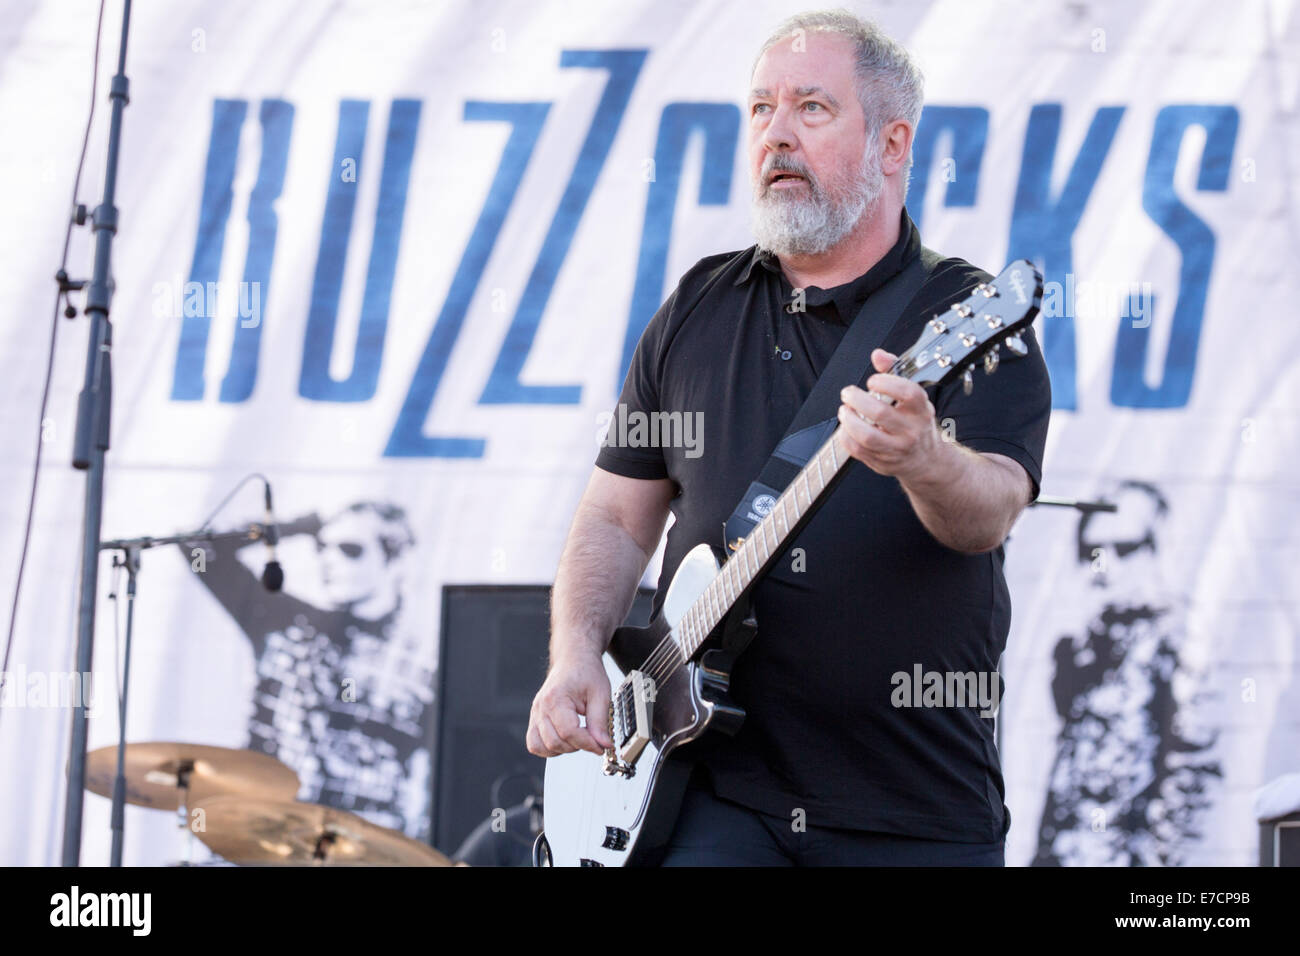 Chicago, Illinois, USA. 13th Sep, 2014. PETE SHELLEY of the band The Buzzcocks performs live at 2014 Riot Fest music - Stock Image